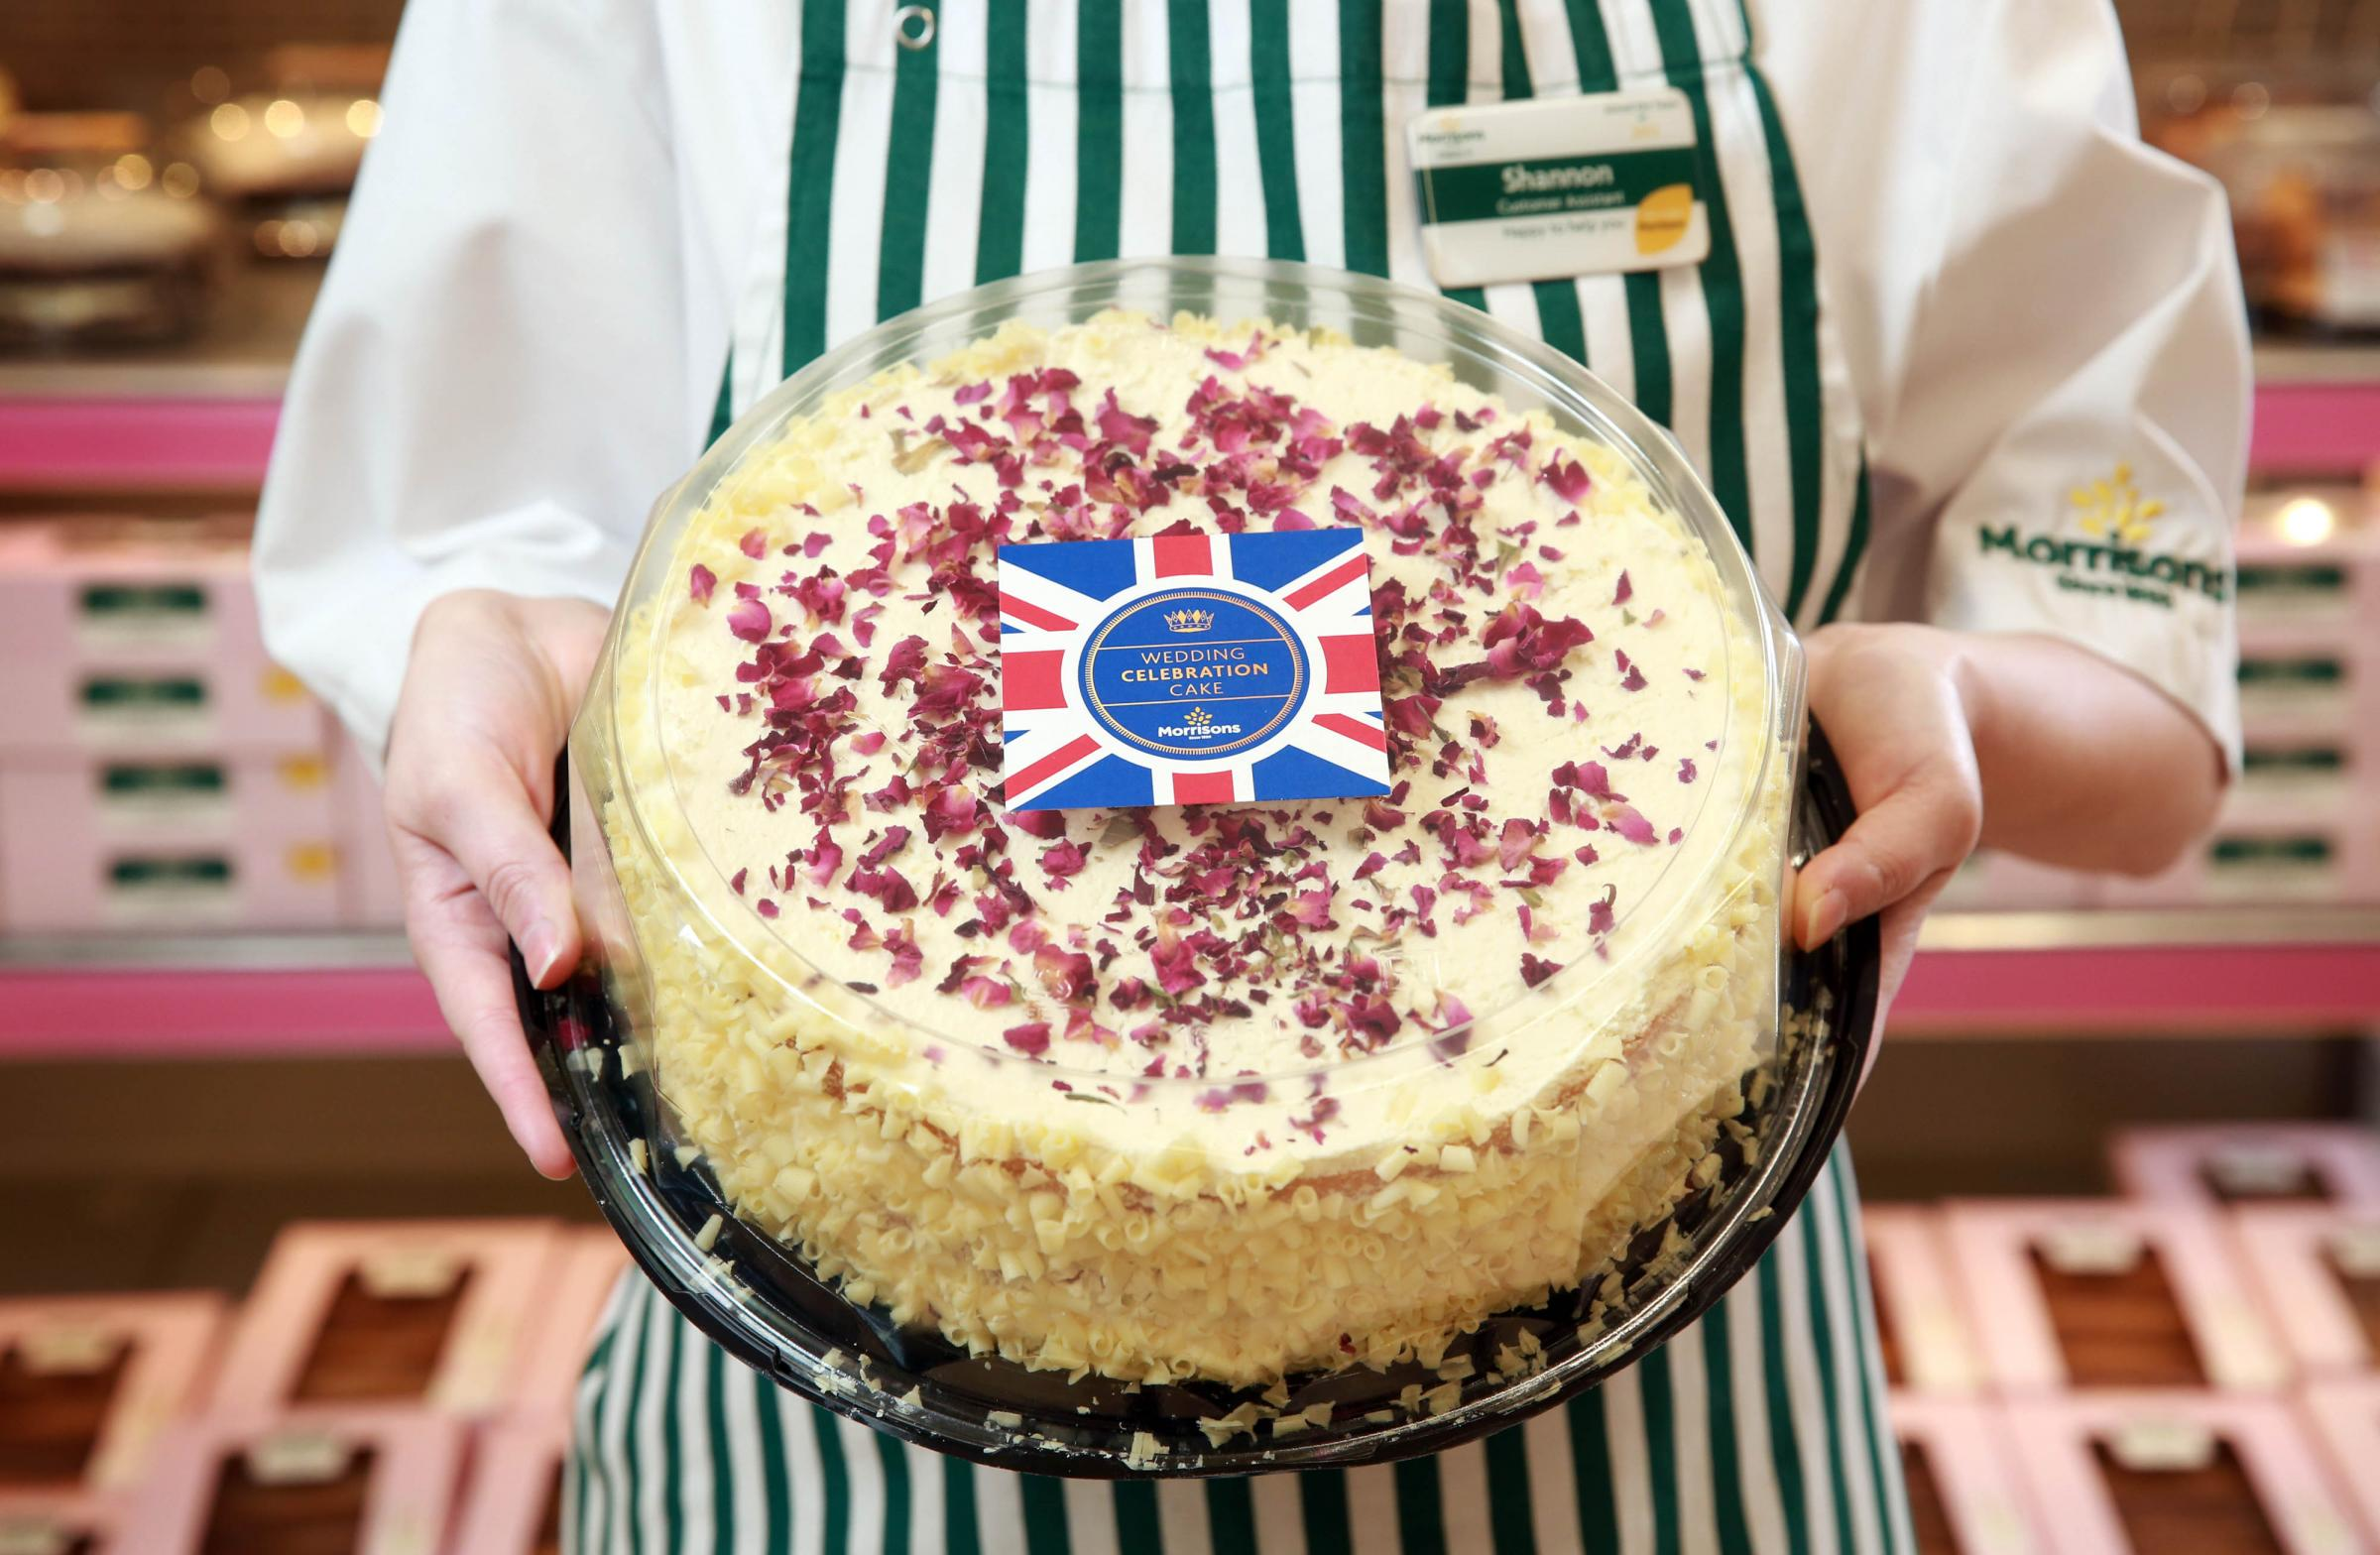 The cake sold by Morrisons for the royal wedding between Prince Harry and Meghan Markle